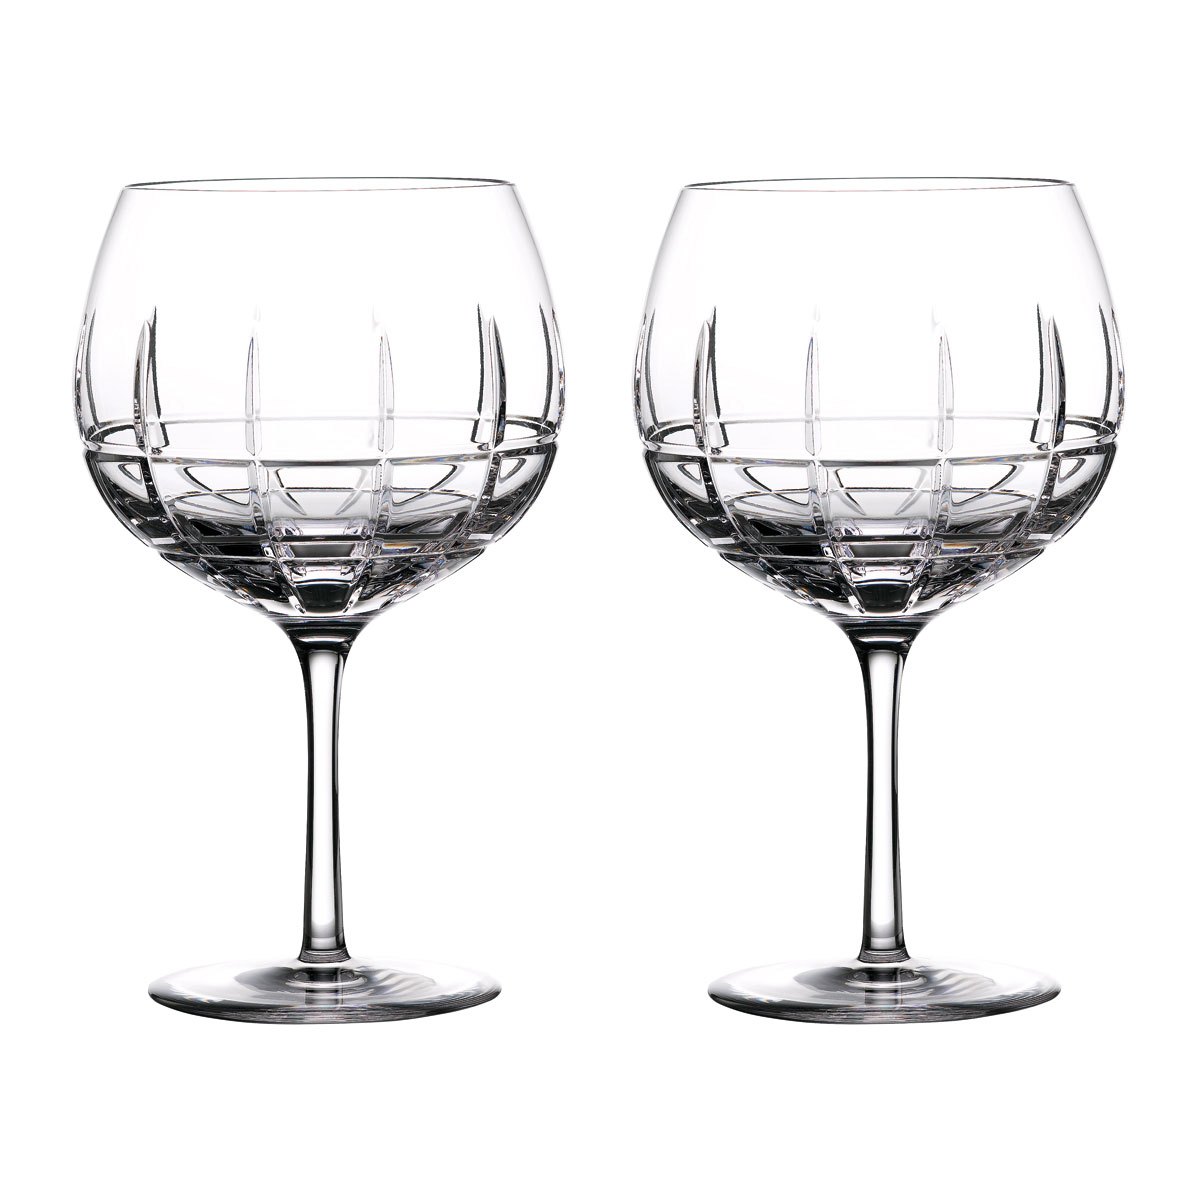 Waterford Crystal Gin Journeys Cluin Balloon Glasses, Pair